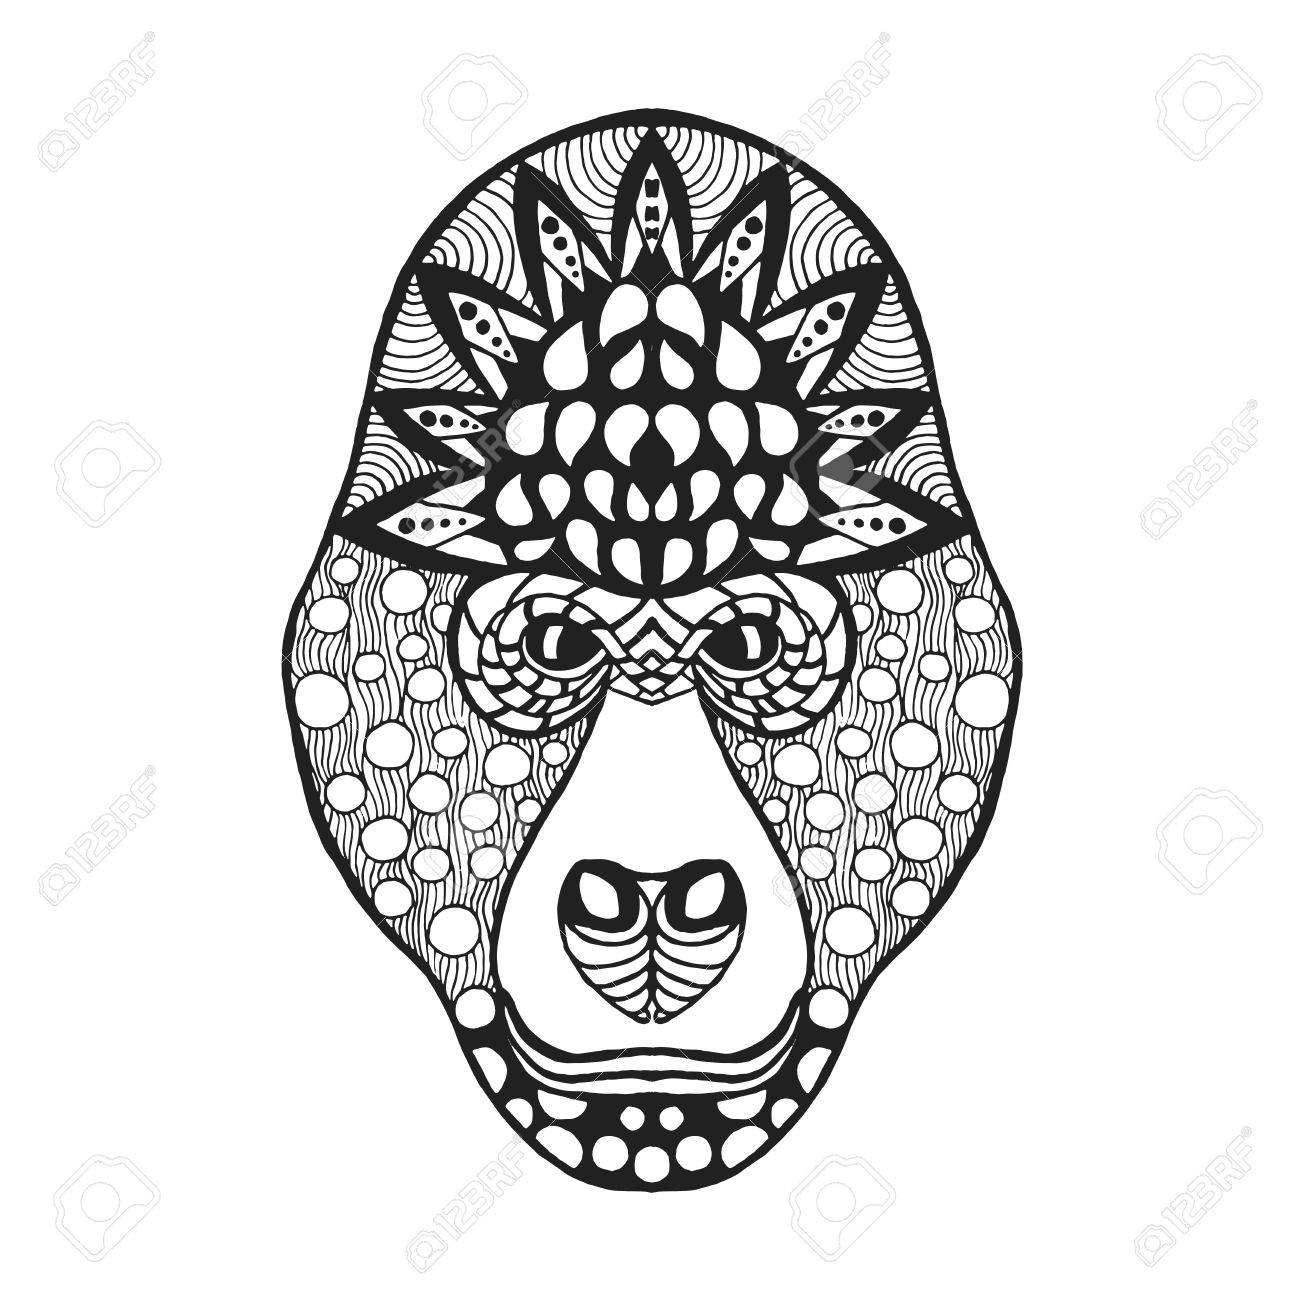 Gorilla Head. Adult Antistress Coloring Page. Black White Hand ...